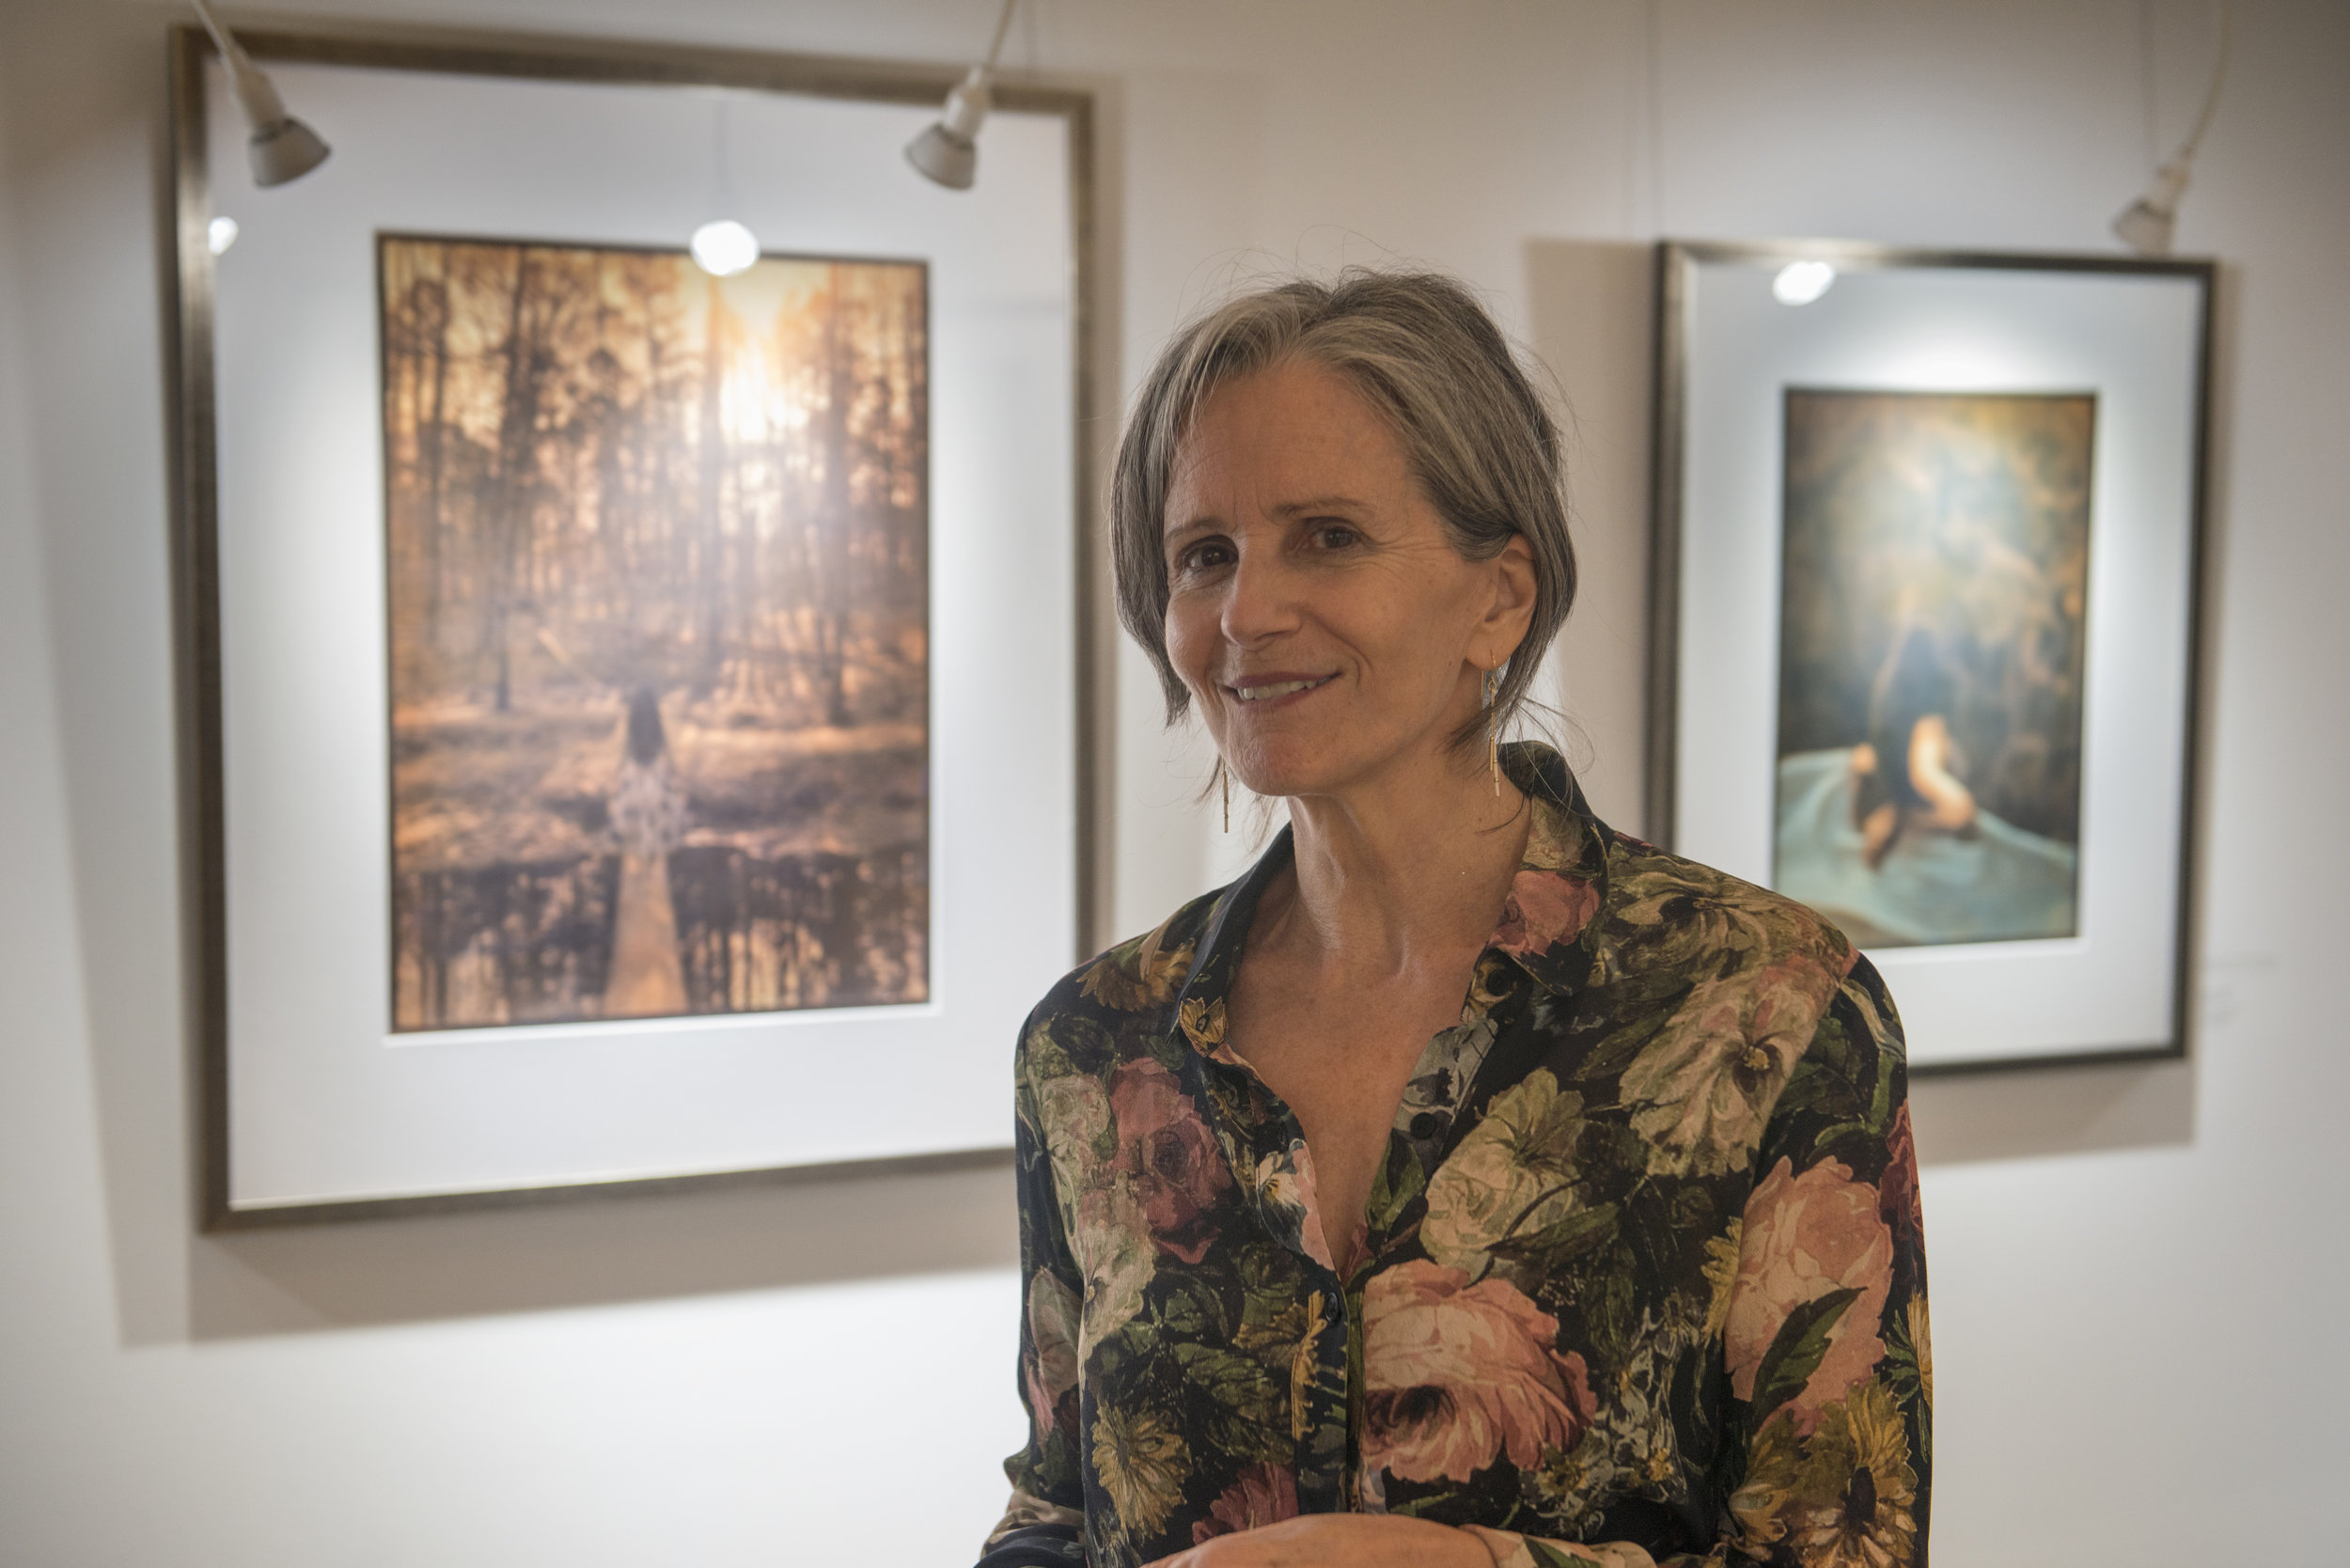 Diana H. Bloomfield with her work at the opening reception.